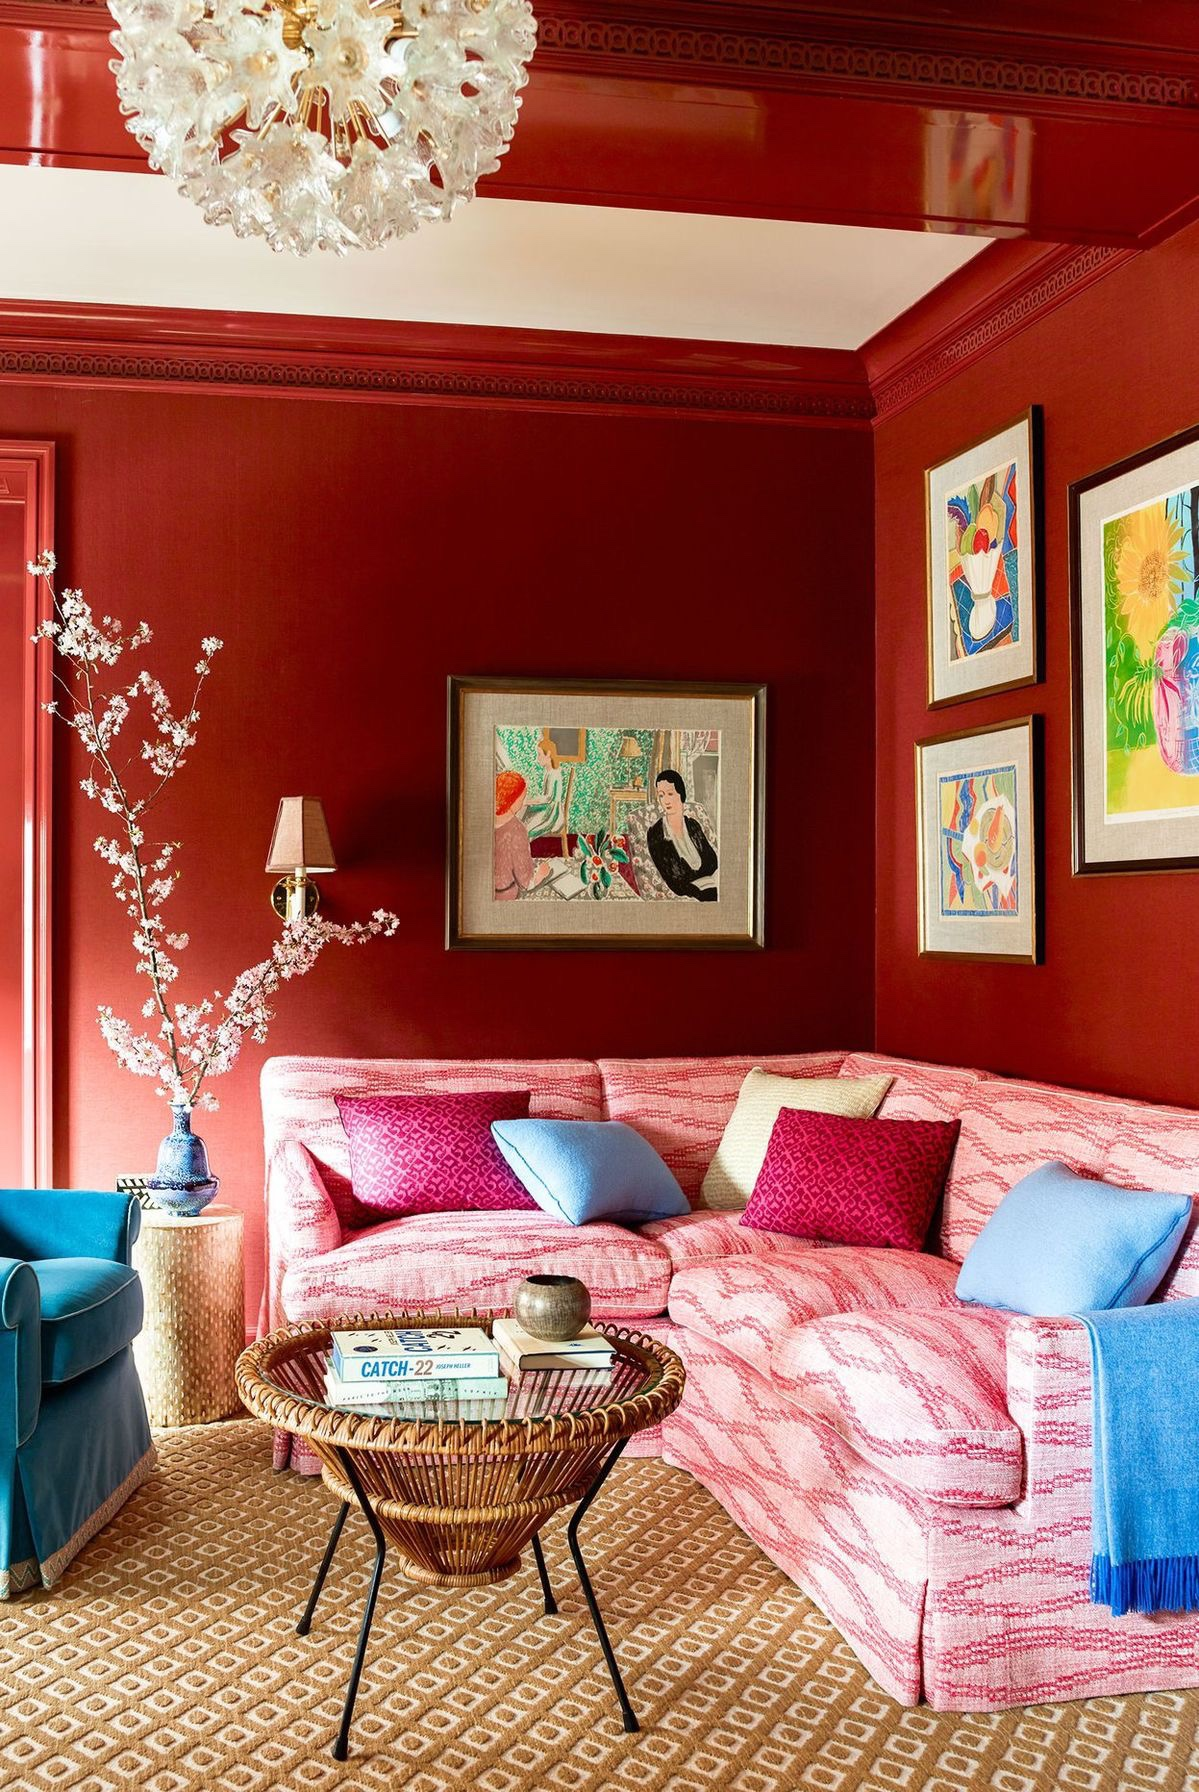 Each color - found in the walls, art, couch, chair and accent pillows - infuses its own character. Together they create an absolutely intriguing blend.   Courtesy of Pinterest